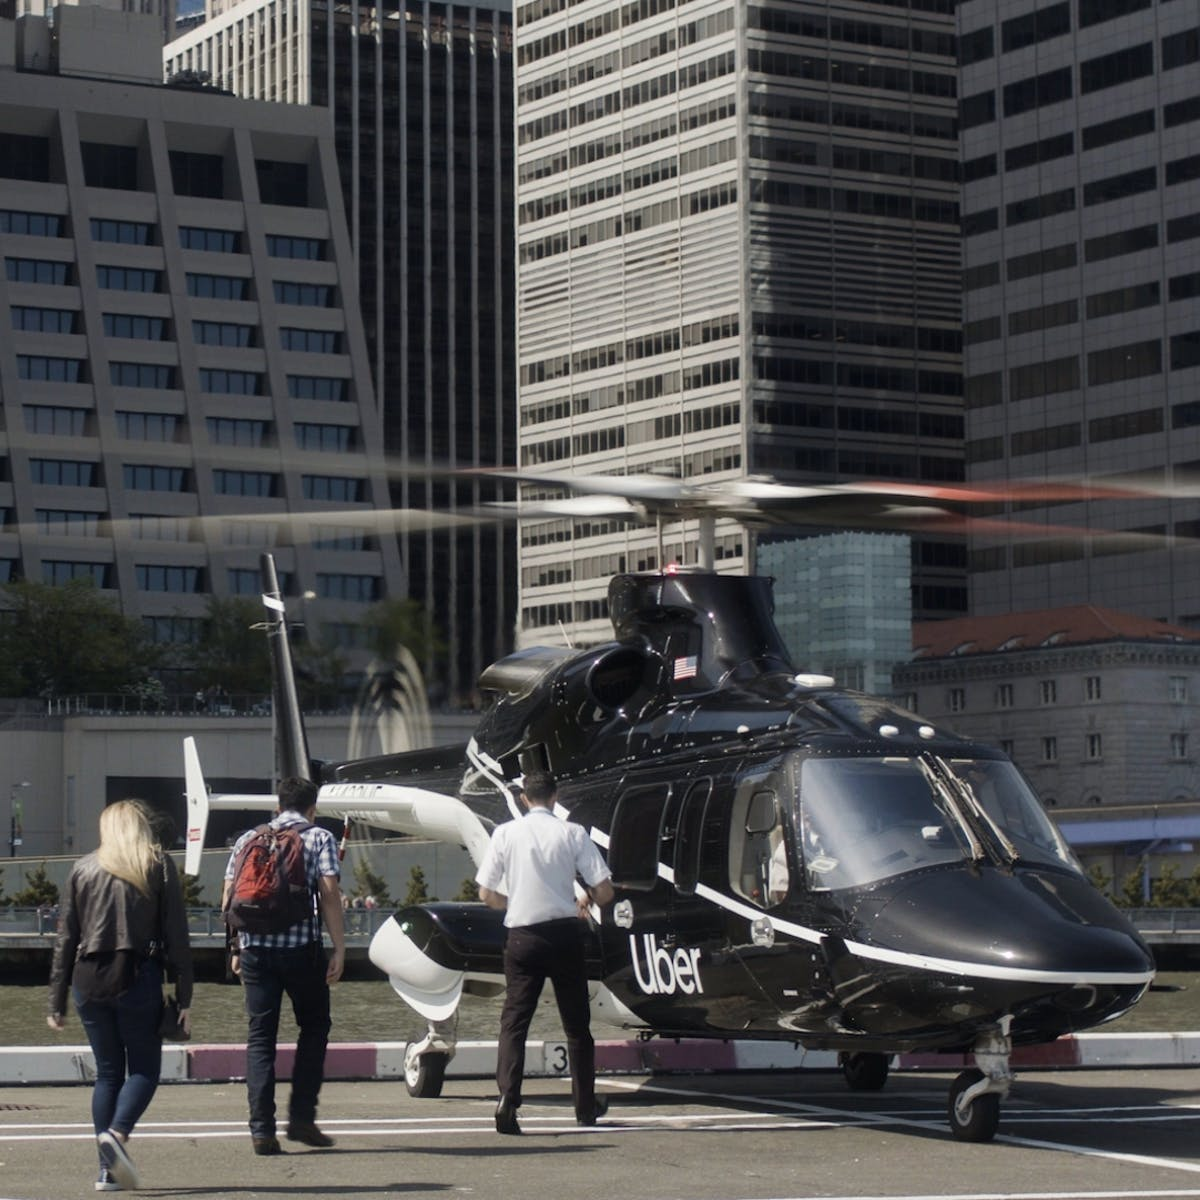 Uber Copter will be a disaster for the environment